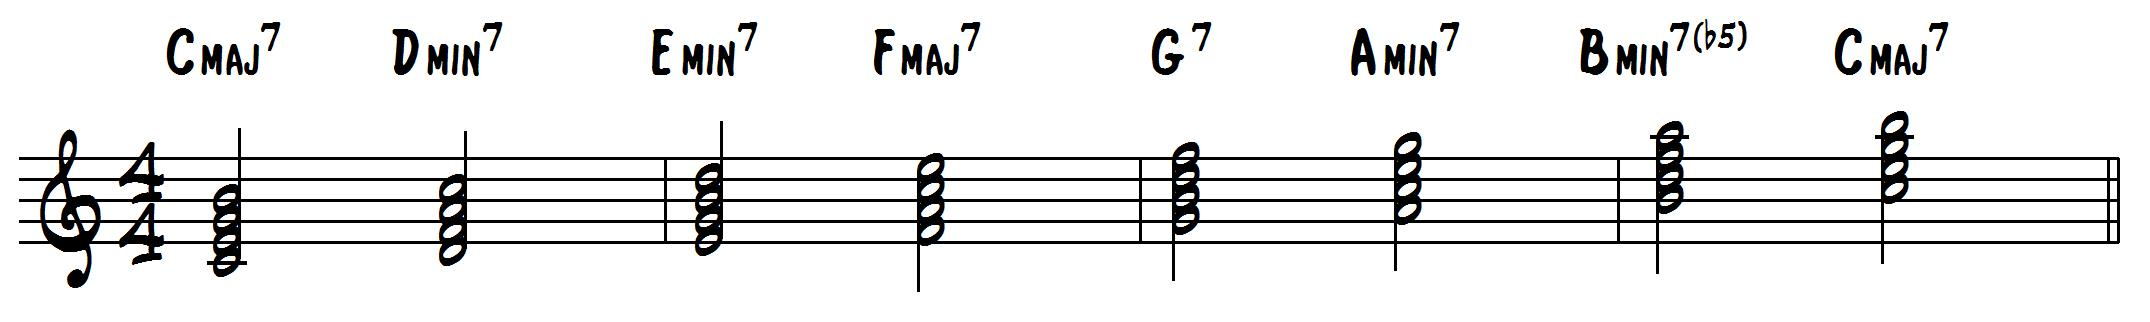 How To Harmonize A Major Scale With 7th Chords Learn Jazz Standards